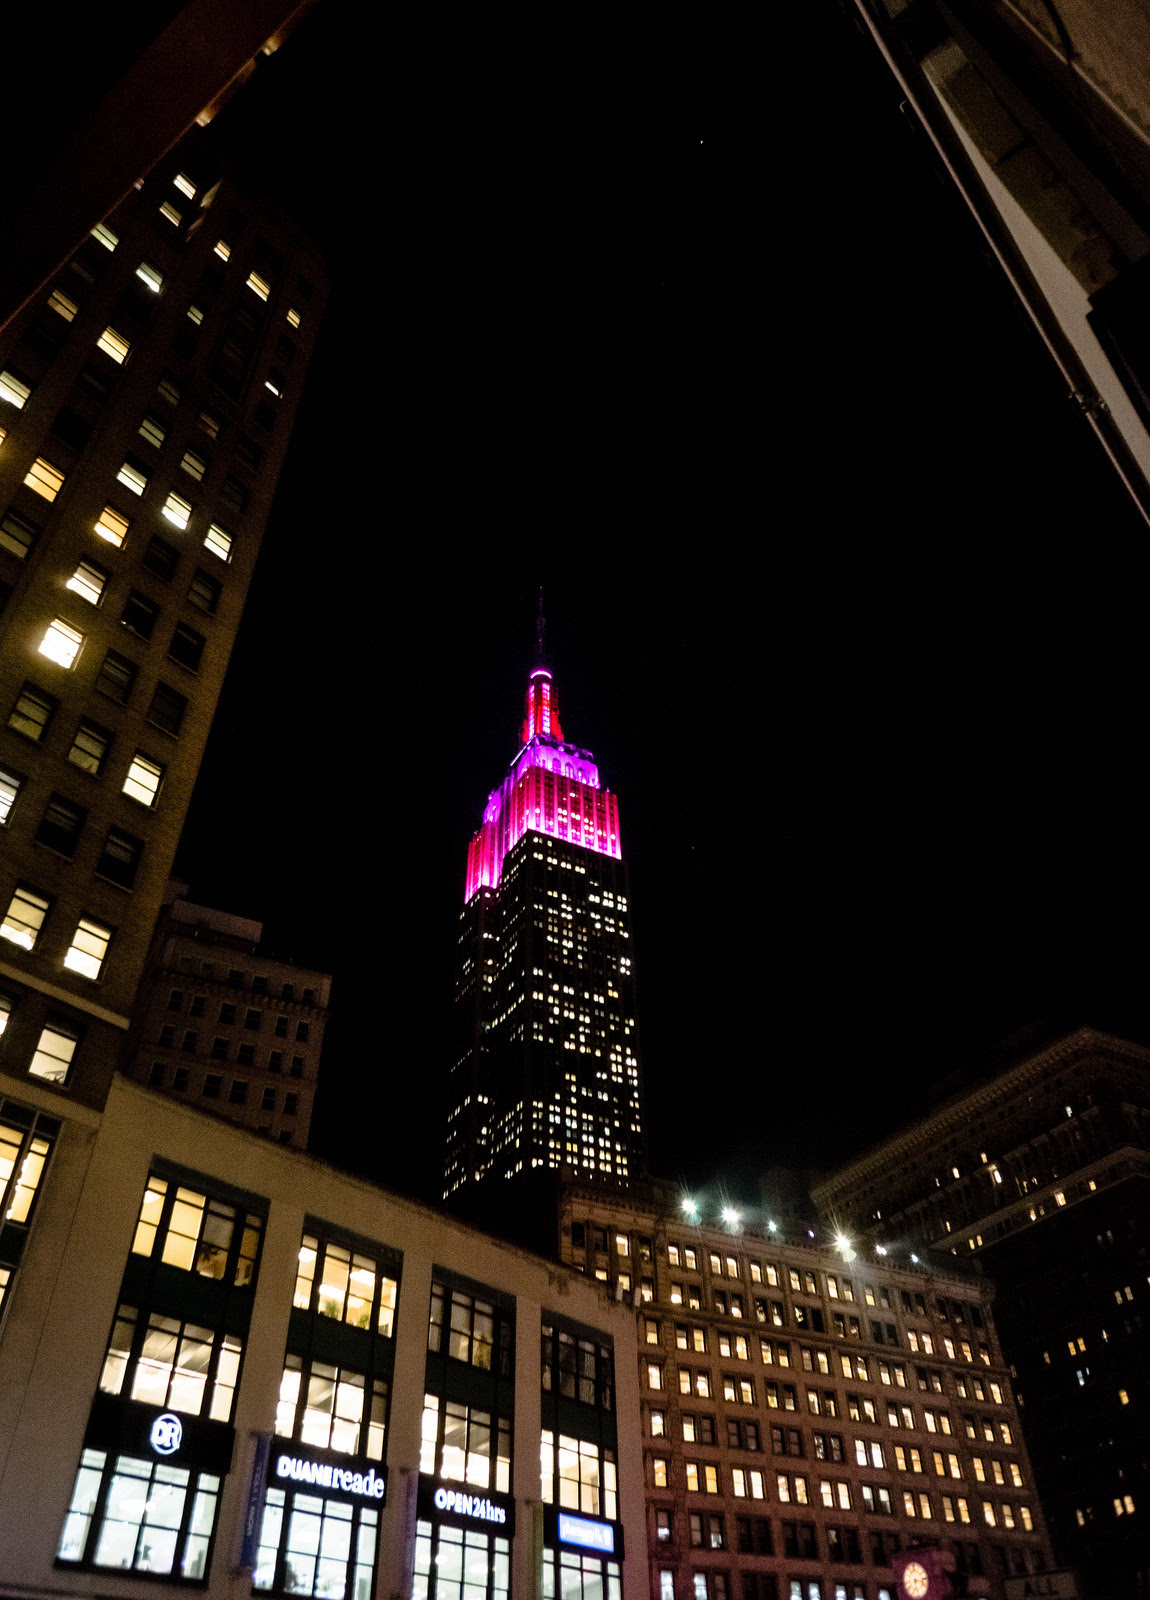 The Empire State Building for last night's Valentine Day observance. It took me awhile to recognize what neon pink stood for but they should definitely do it more often.